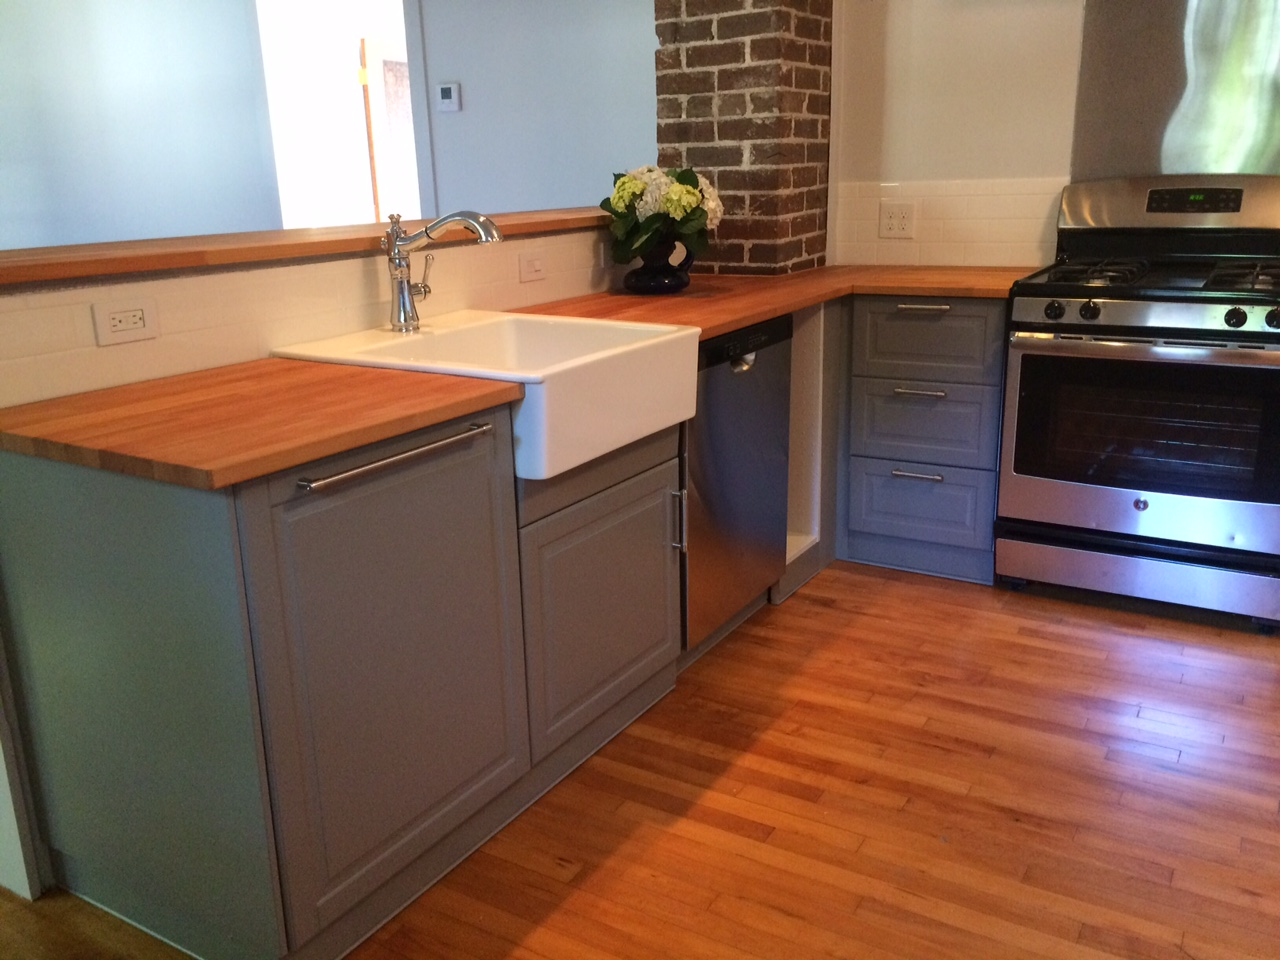 An Ikea Kitchen Renovation Saves This 1920s Bungalow Home